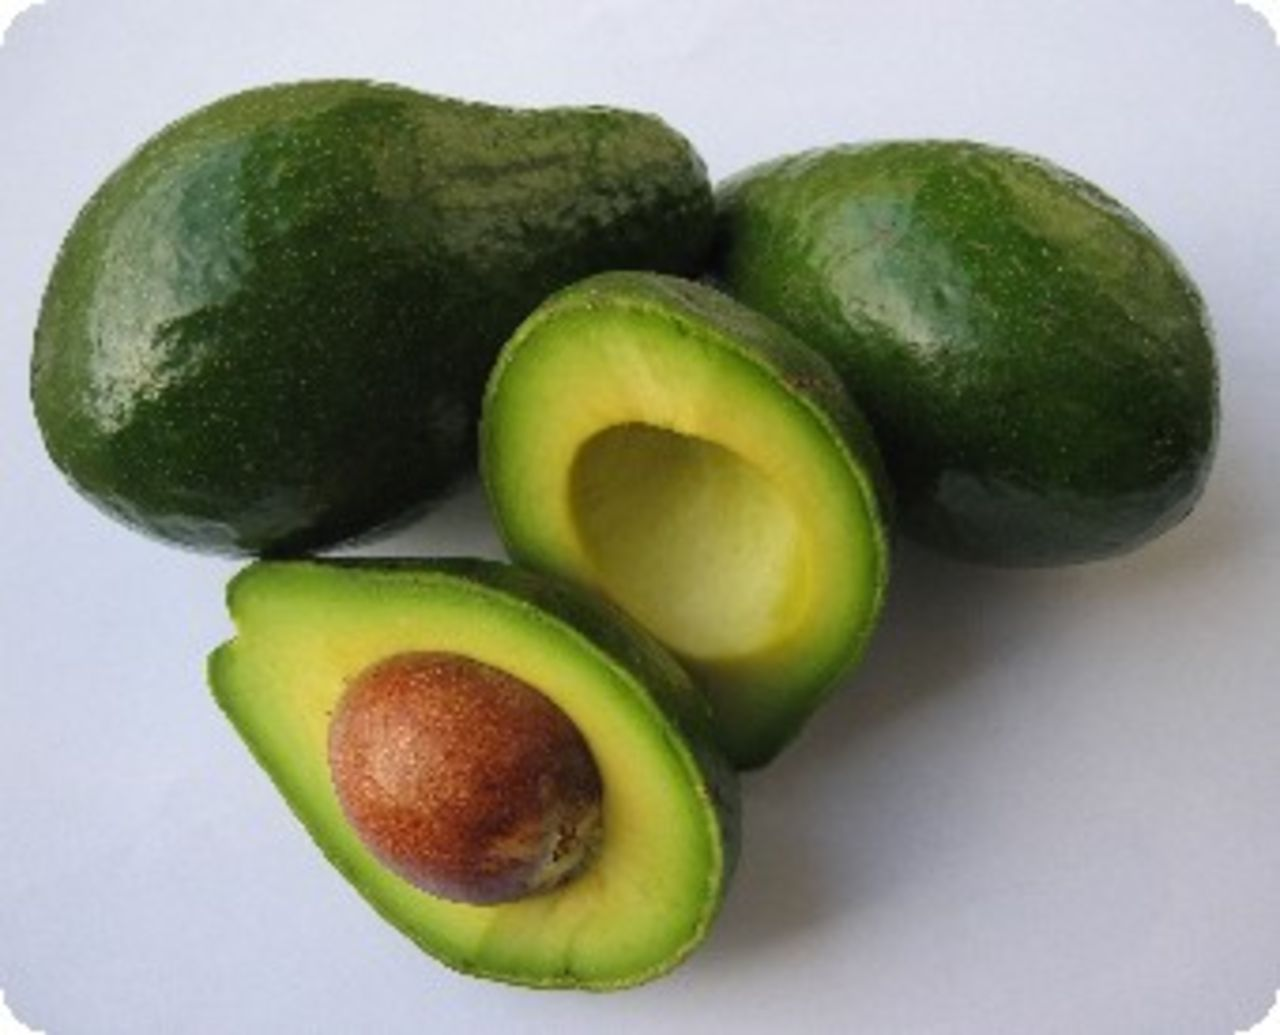 The Health Benefits of Avocado - V for Value